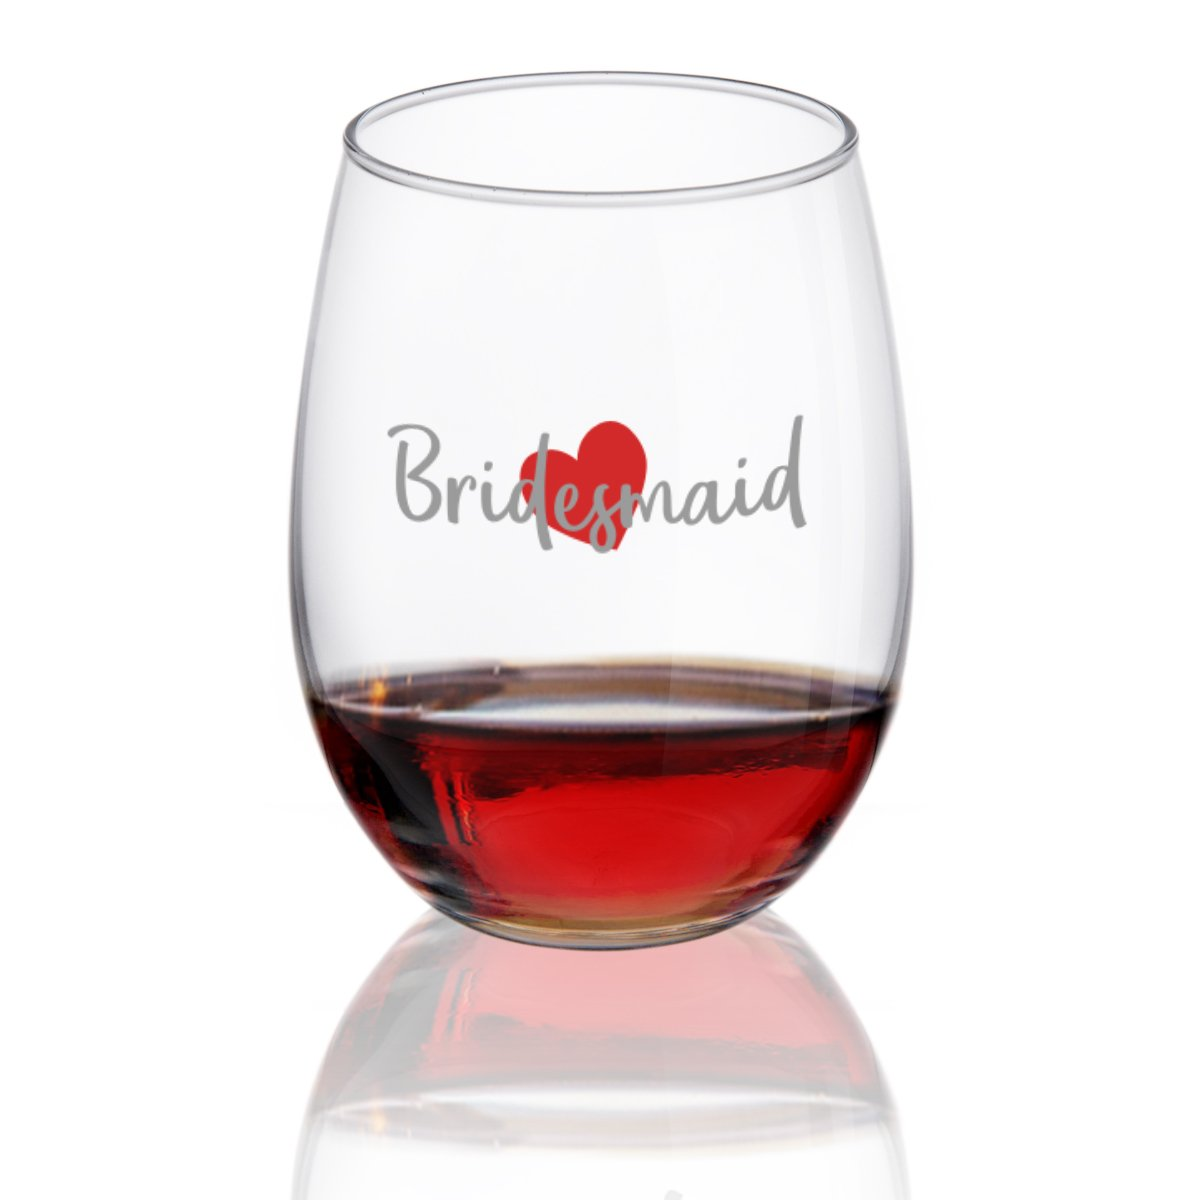 Bridesmaid Wine Glasstemless Wine Glasses for Bride Tribe